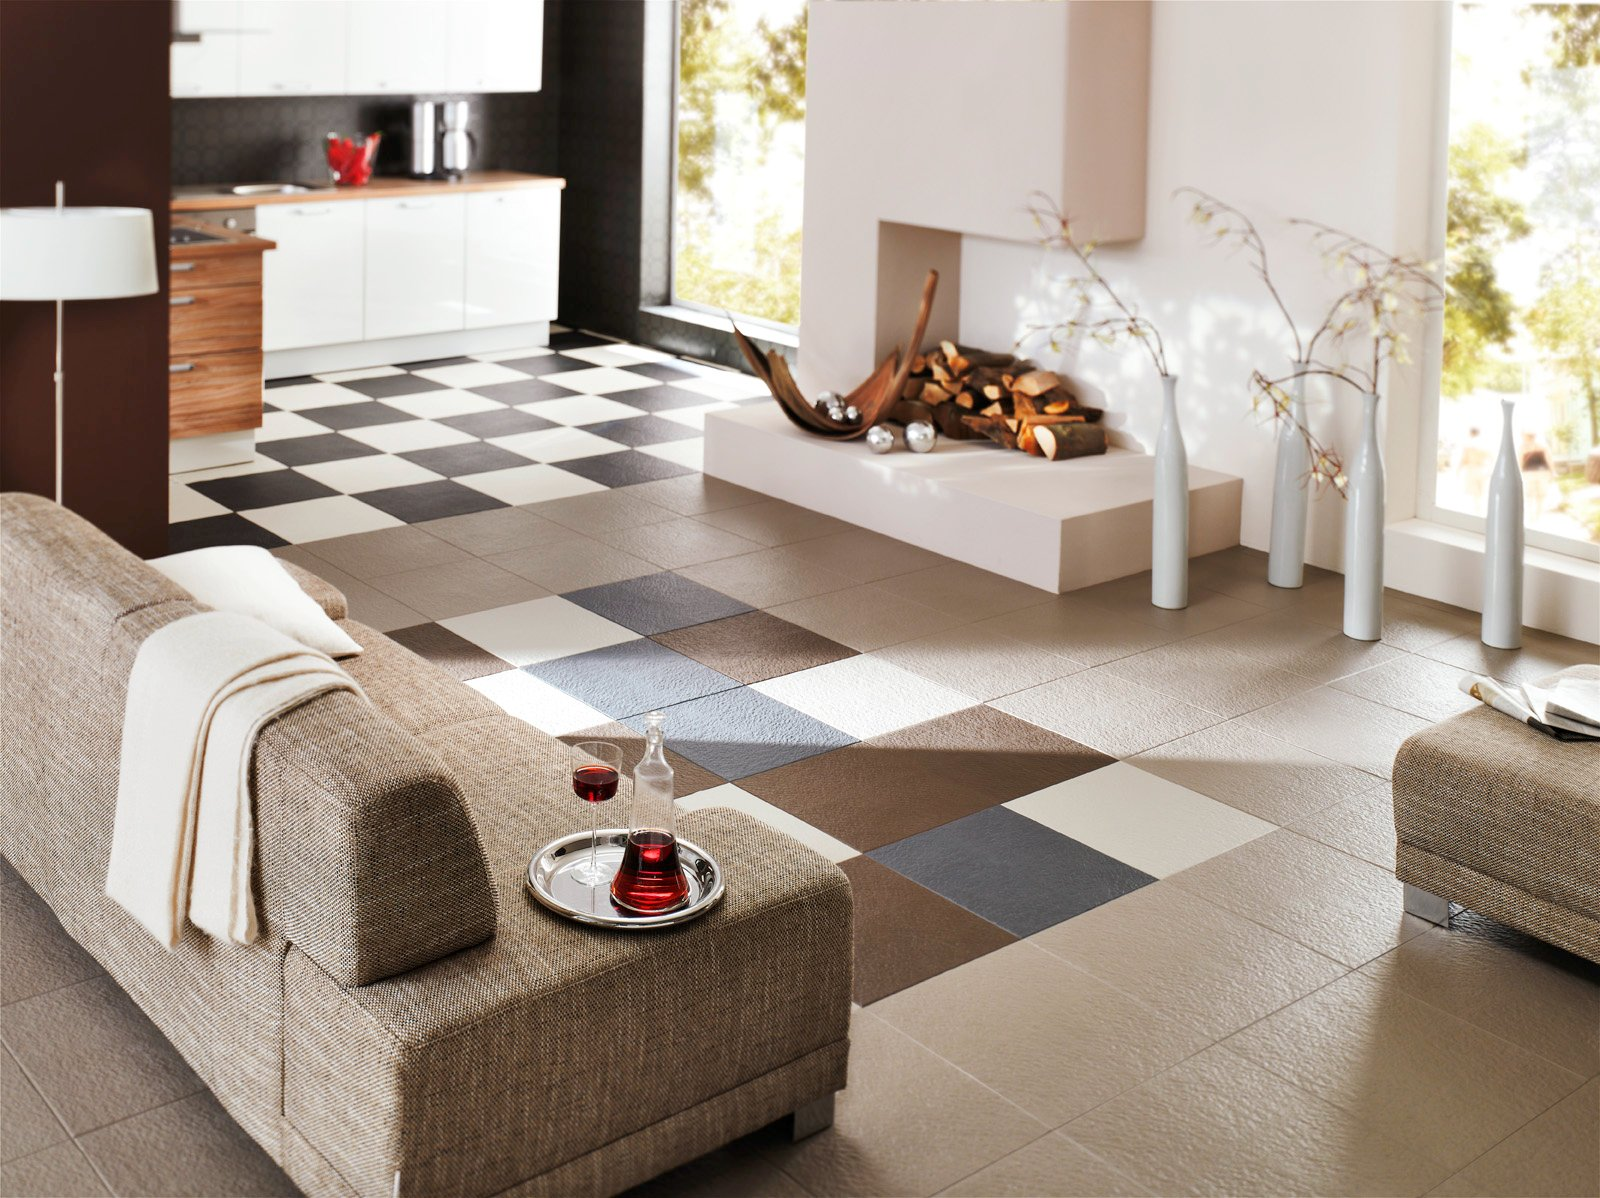 Perfection Floor Tile HomeStyle Slate Tiles | Flexible Slate Tiles